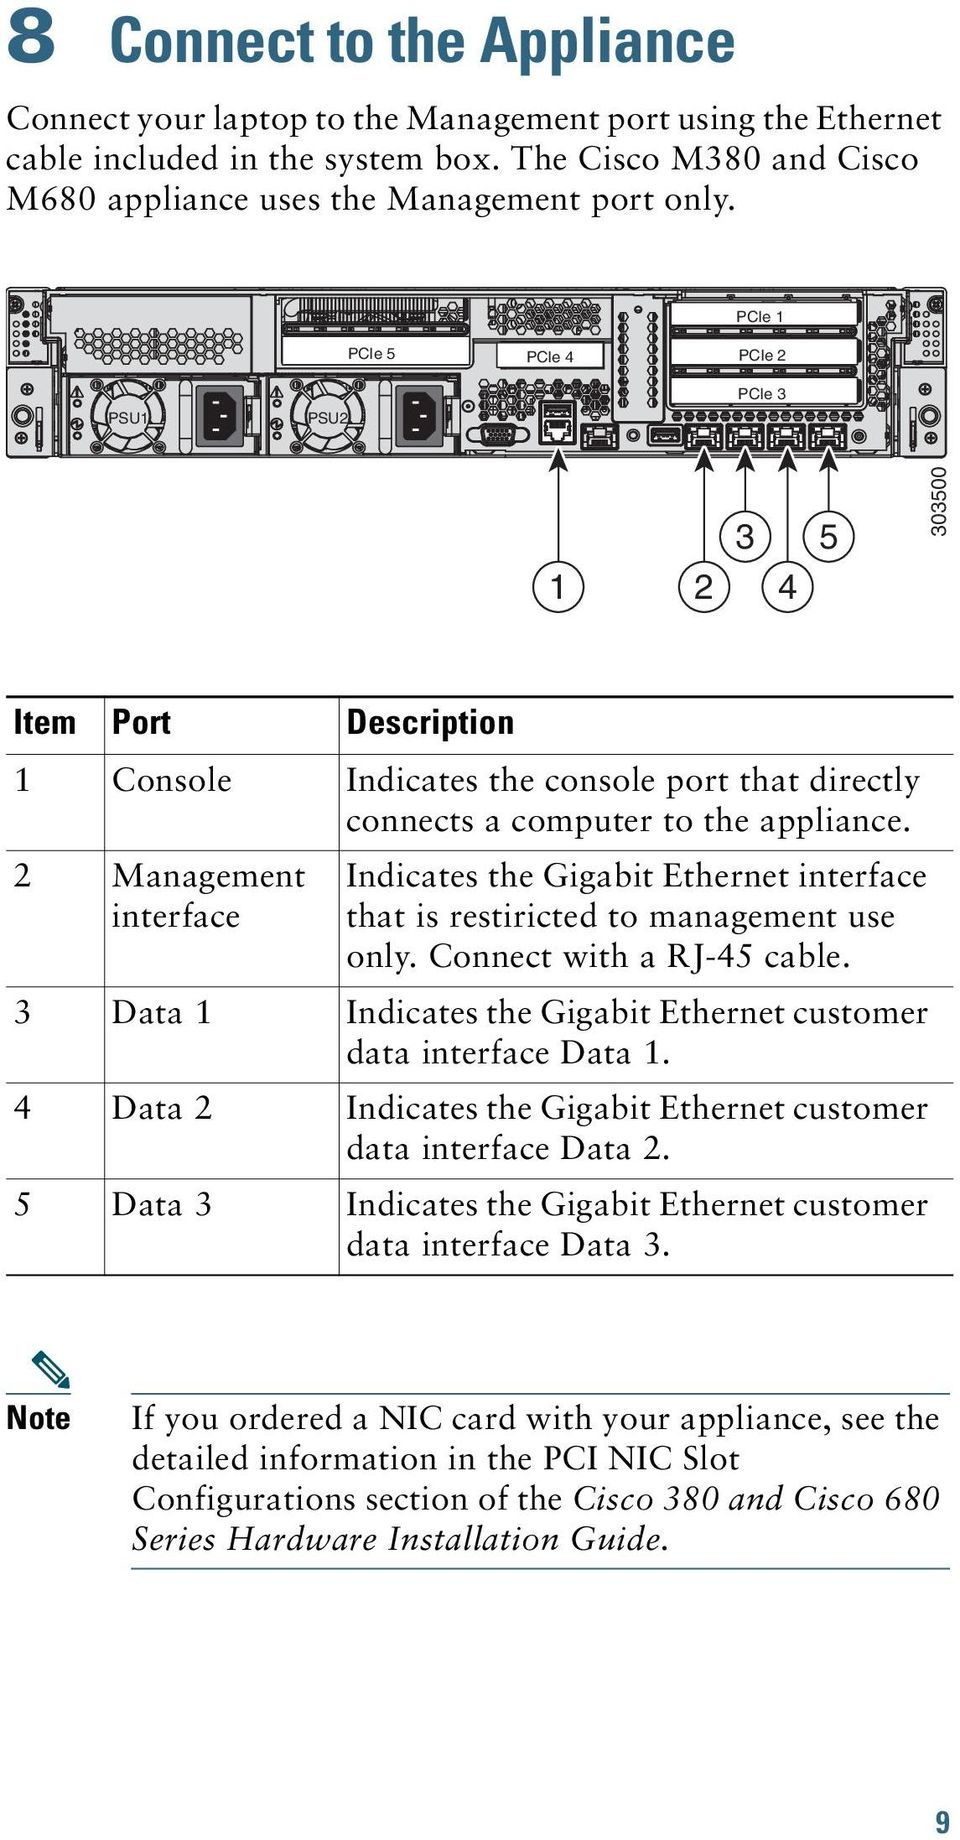 2 Management interface Indicates the Gigabit Ethernet interface that is restiricted to management use only. Connect with a RJ-45 cable.